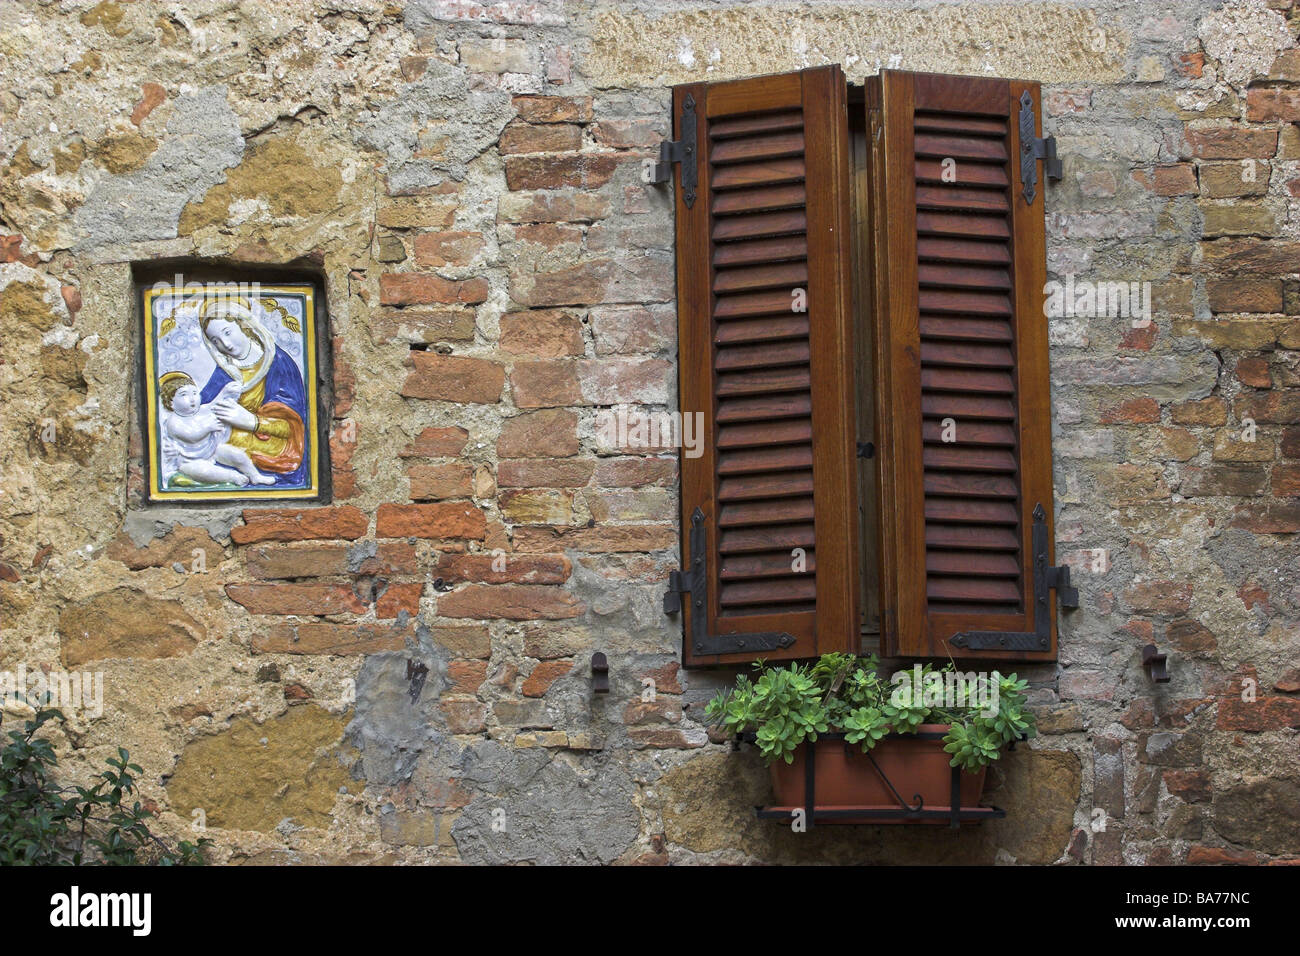 Outside house windows - House Facade Detail Saint Picture Windows Shutters Closed Flower Boxes Italy Tuscany Pienza Residence Facade Outside